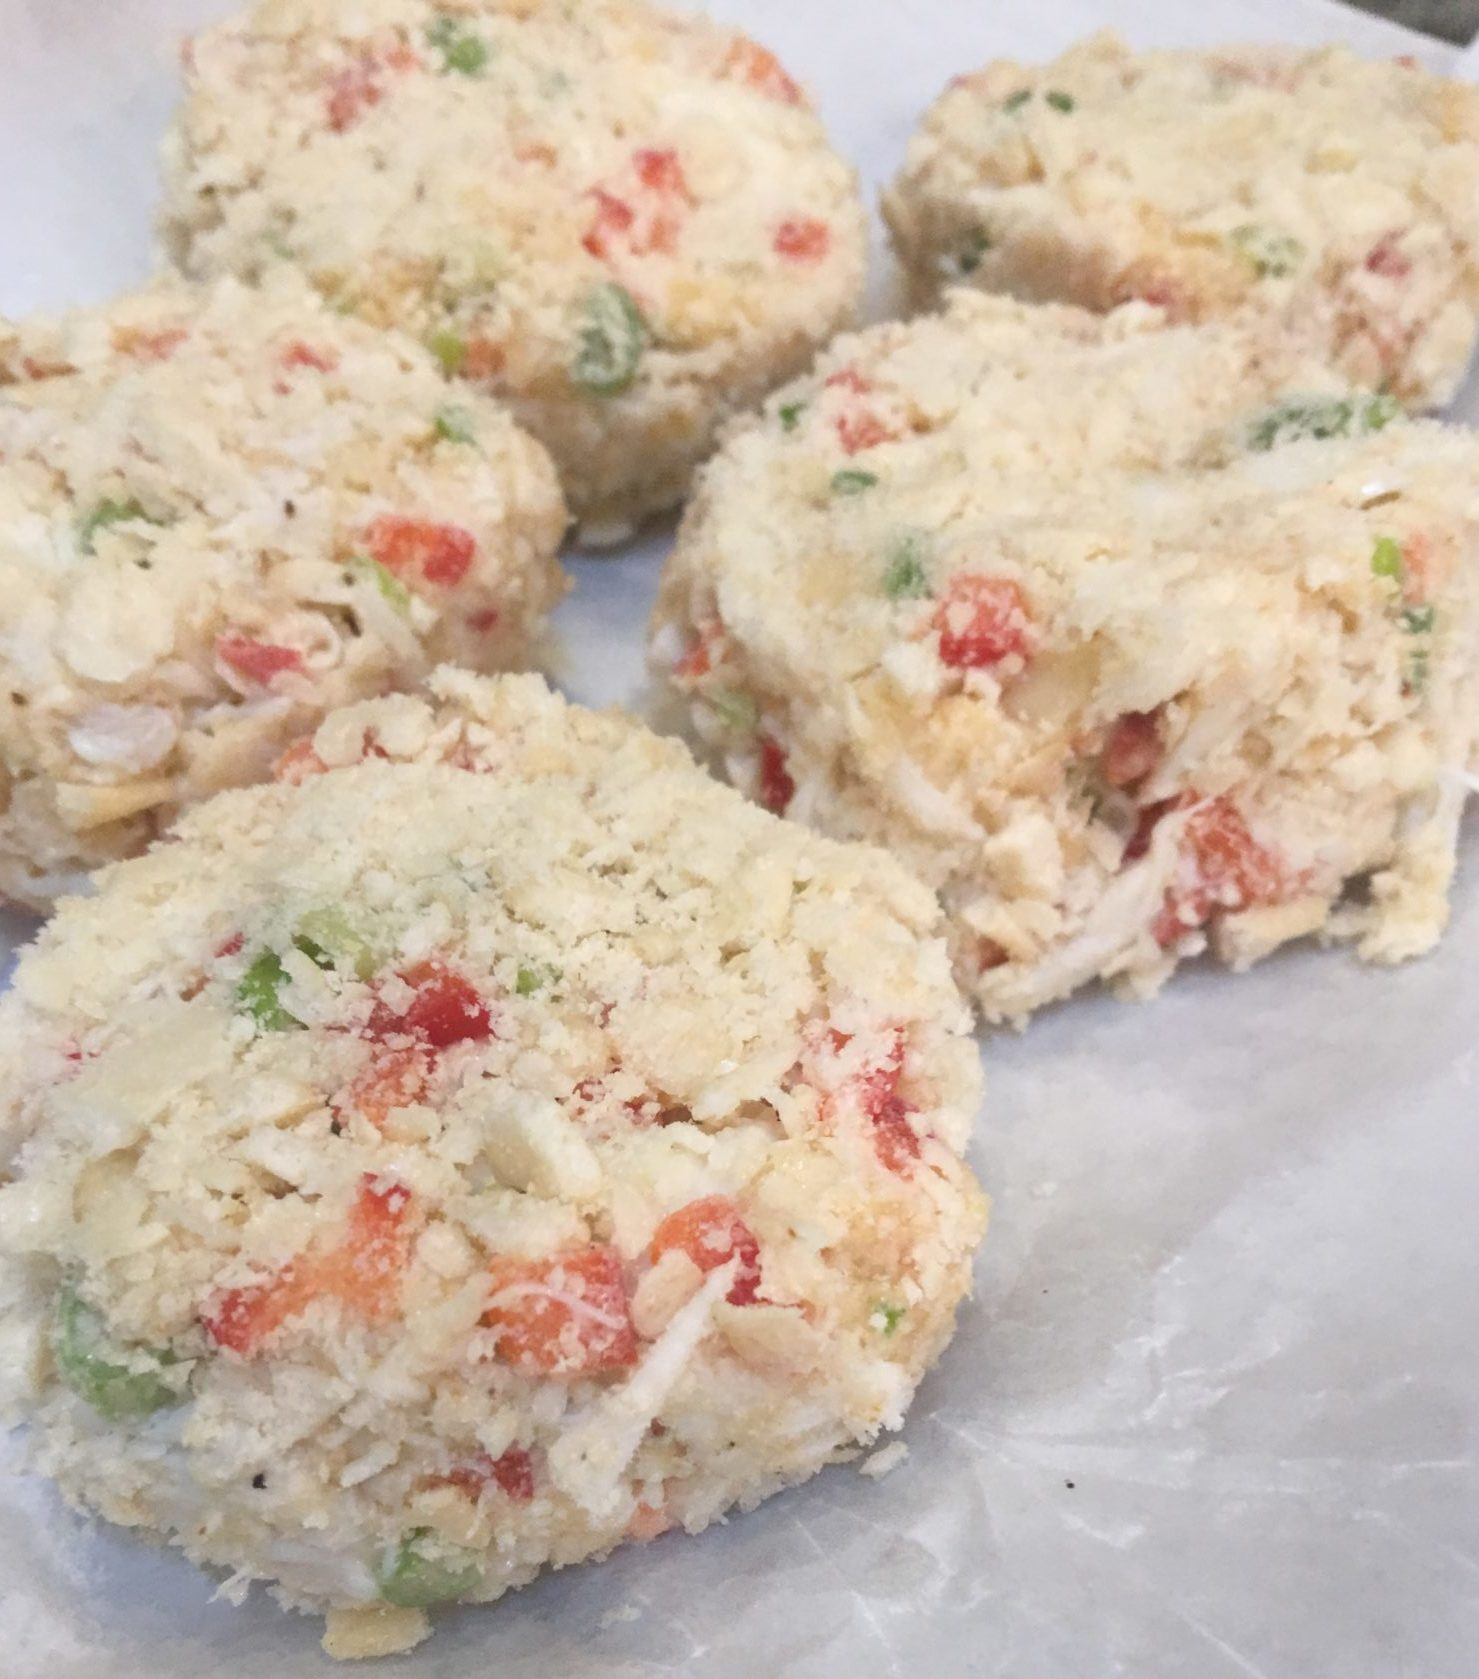 Prepared crab cakes ready to cook